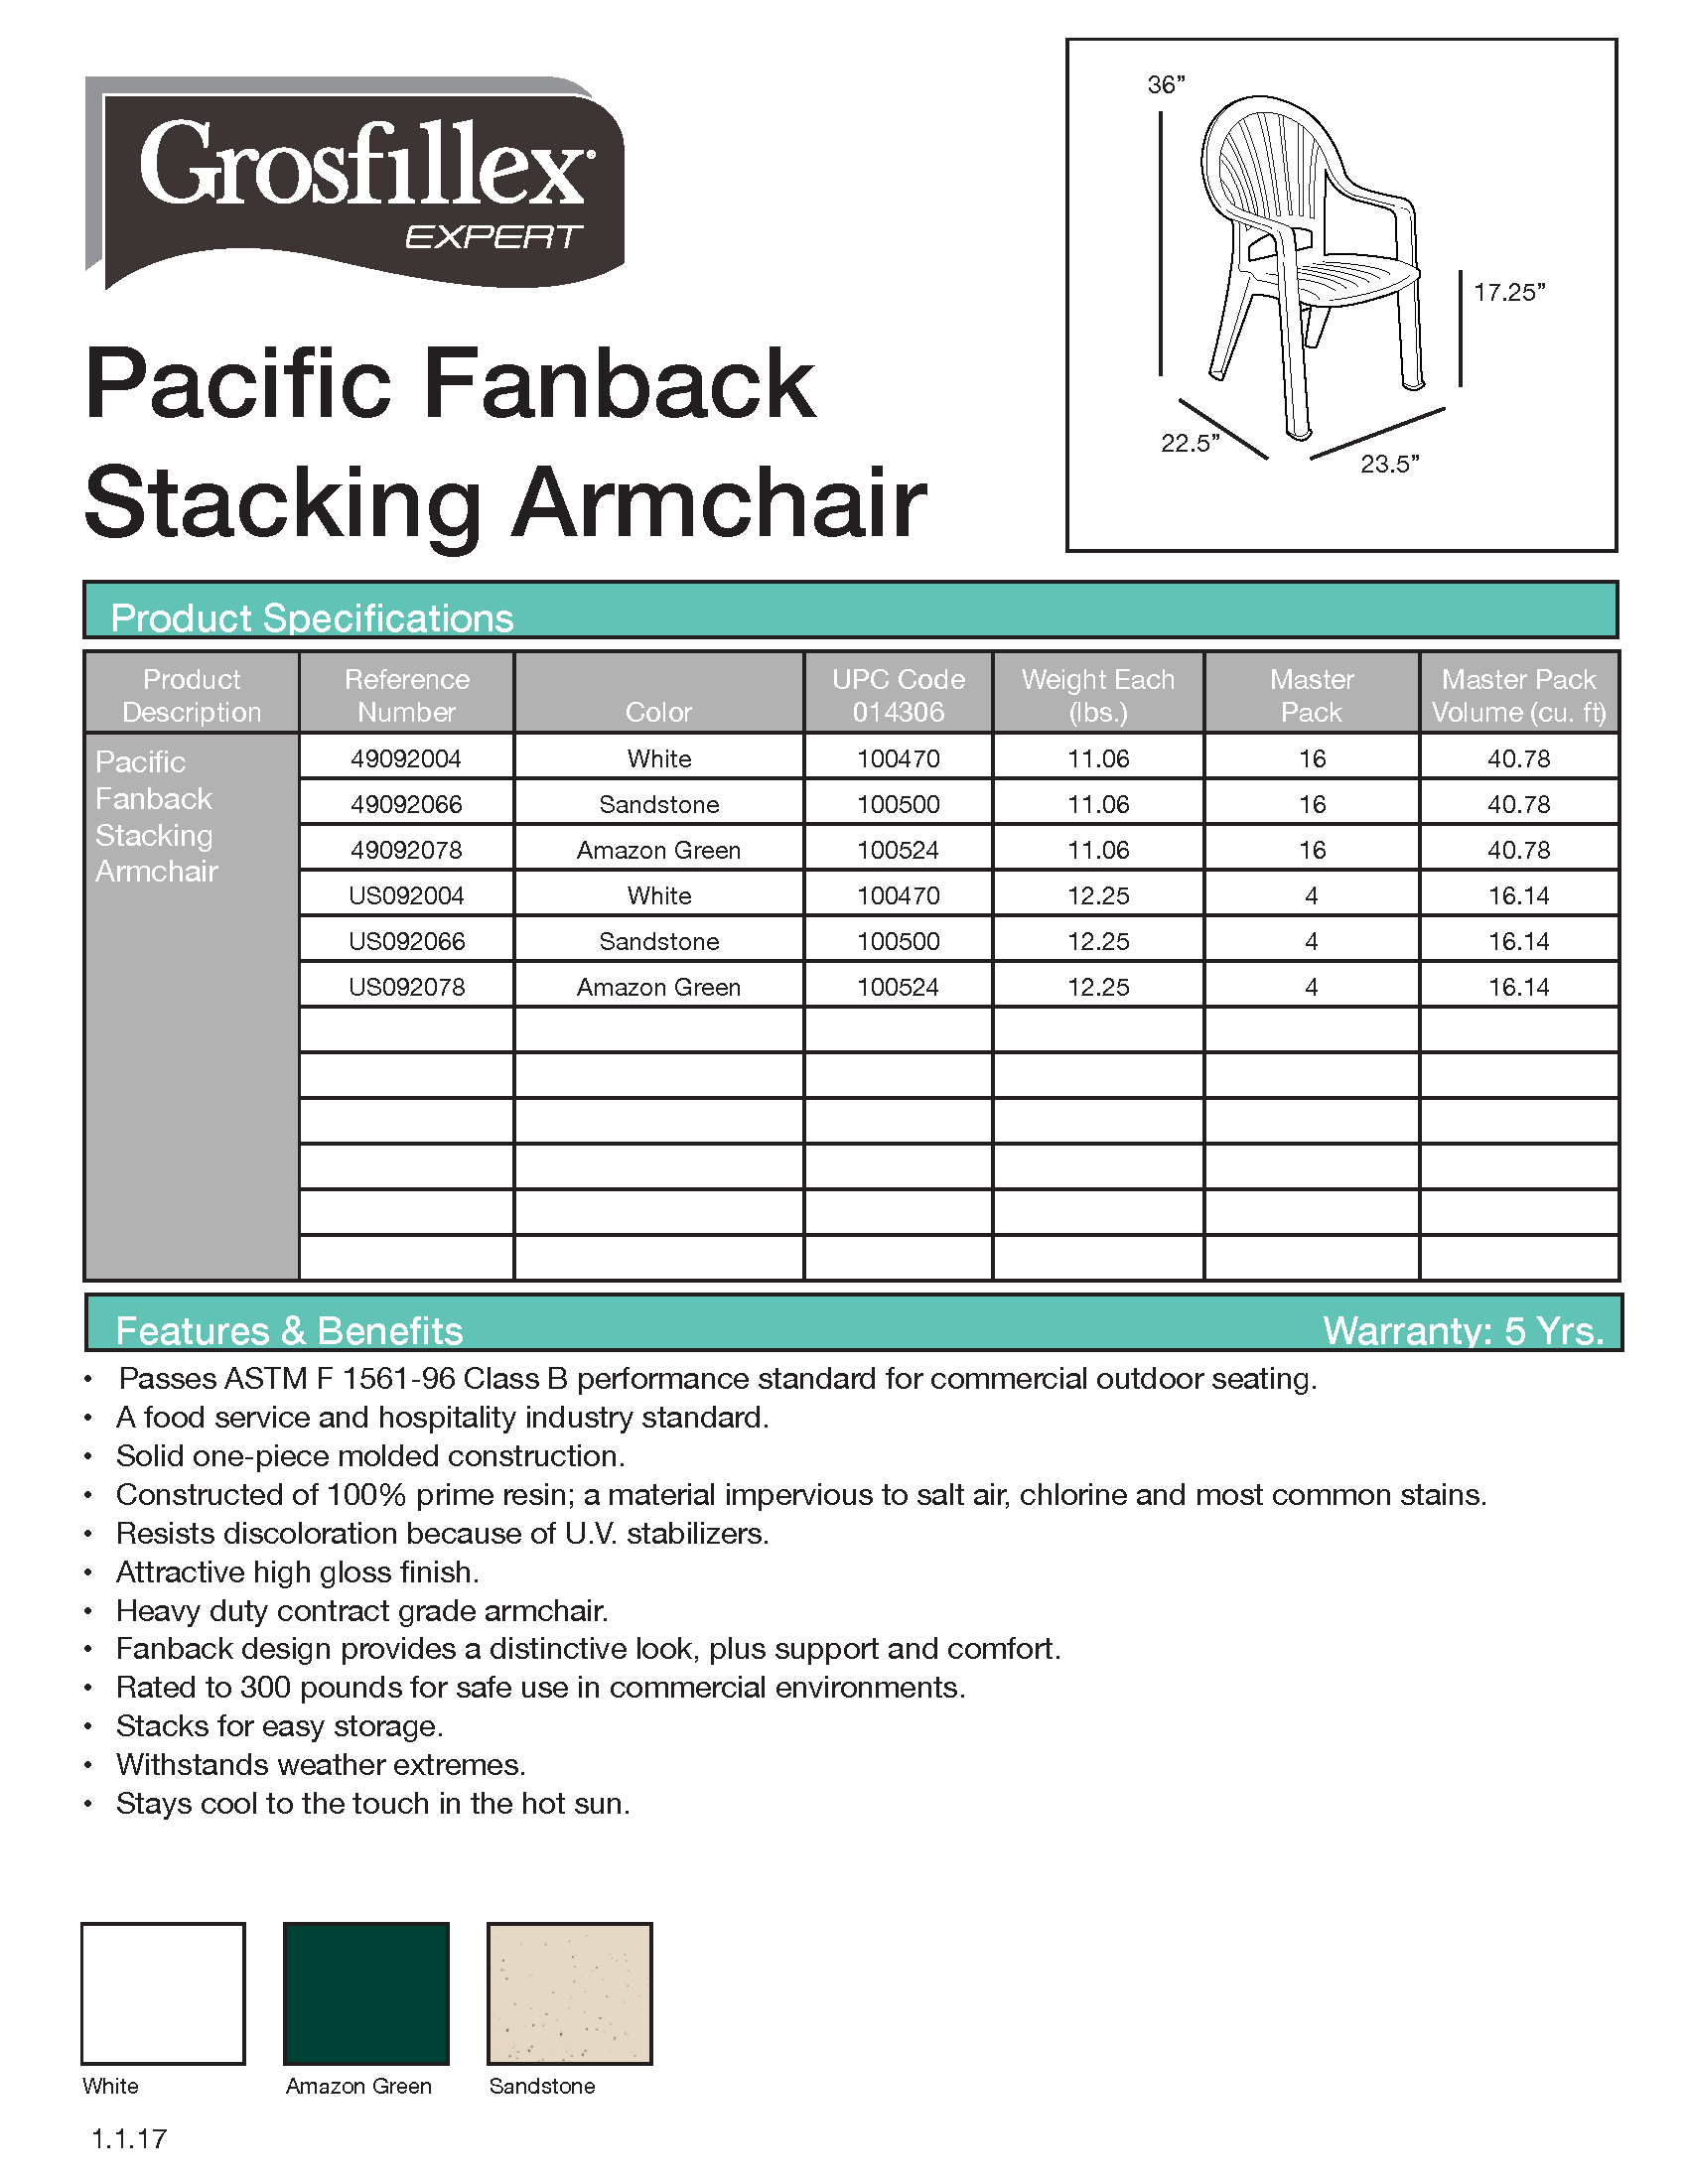 Pacific Fanback Armchair